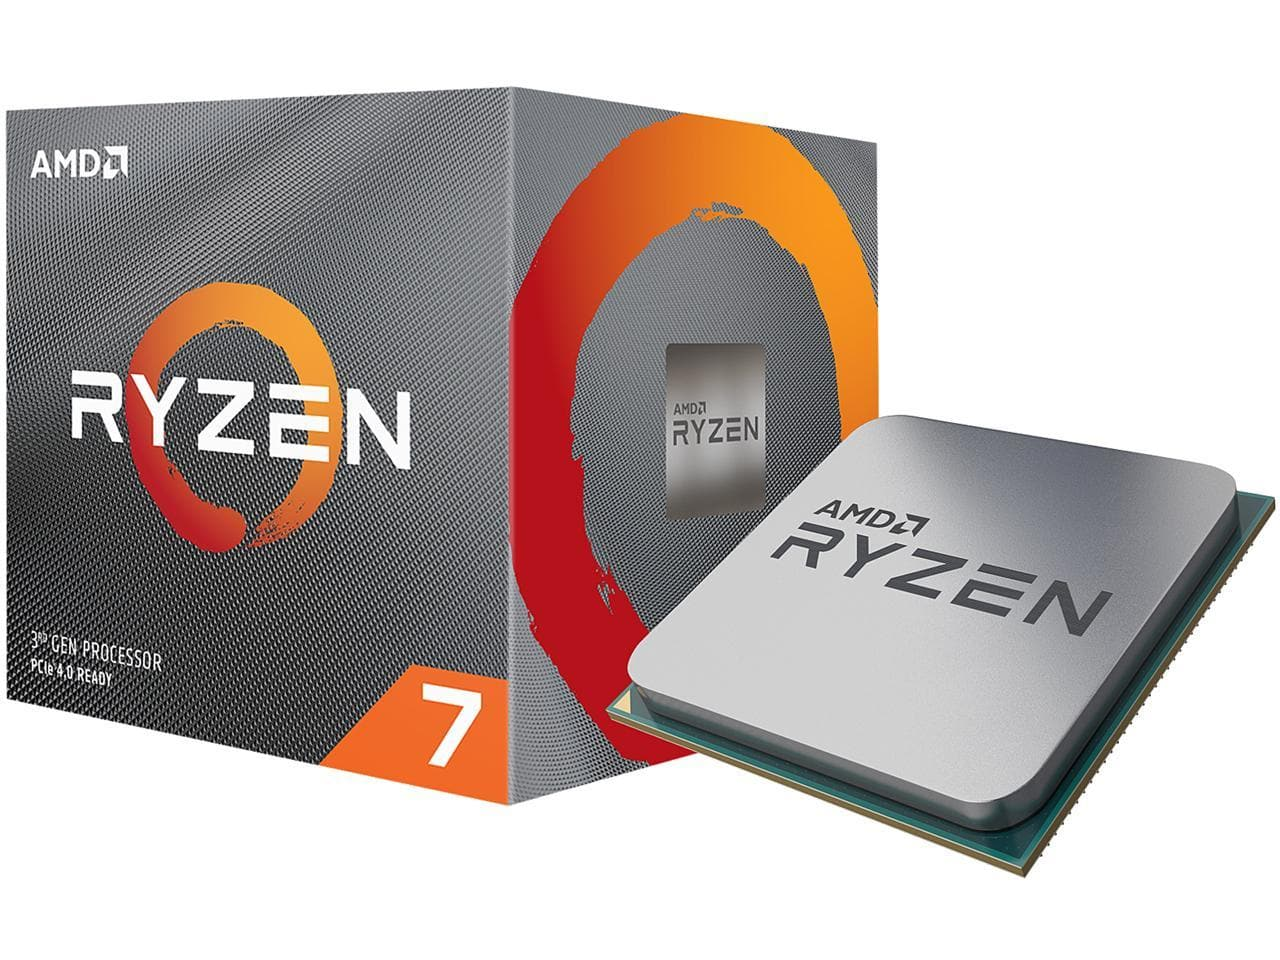 AMD RYZEN 7 3700X 8-Core 3.6 GHz (4.4 GHz Max Boost) Socket AM4 65W at NewEgg $273.47